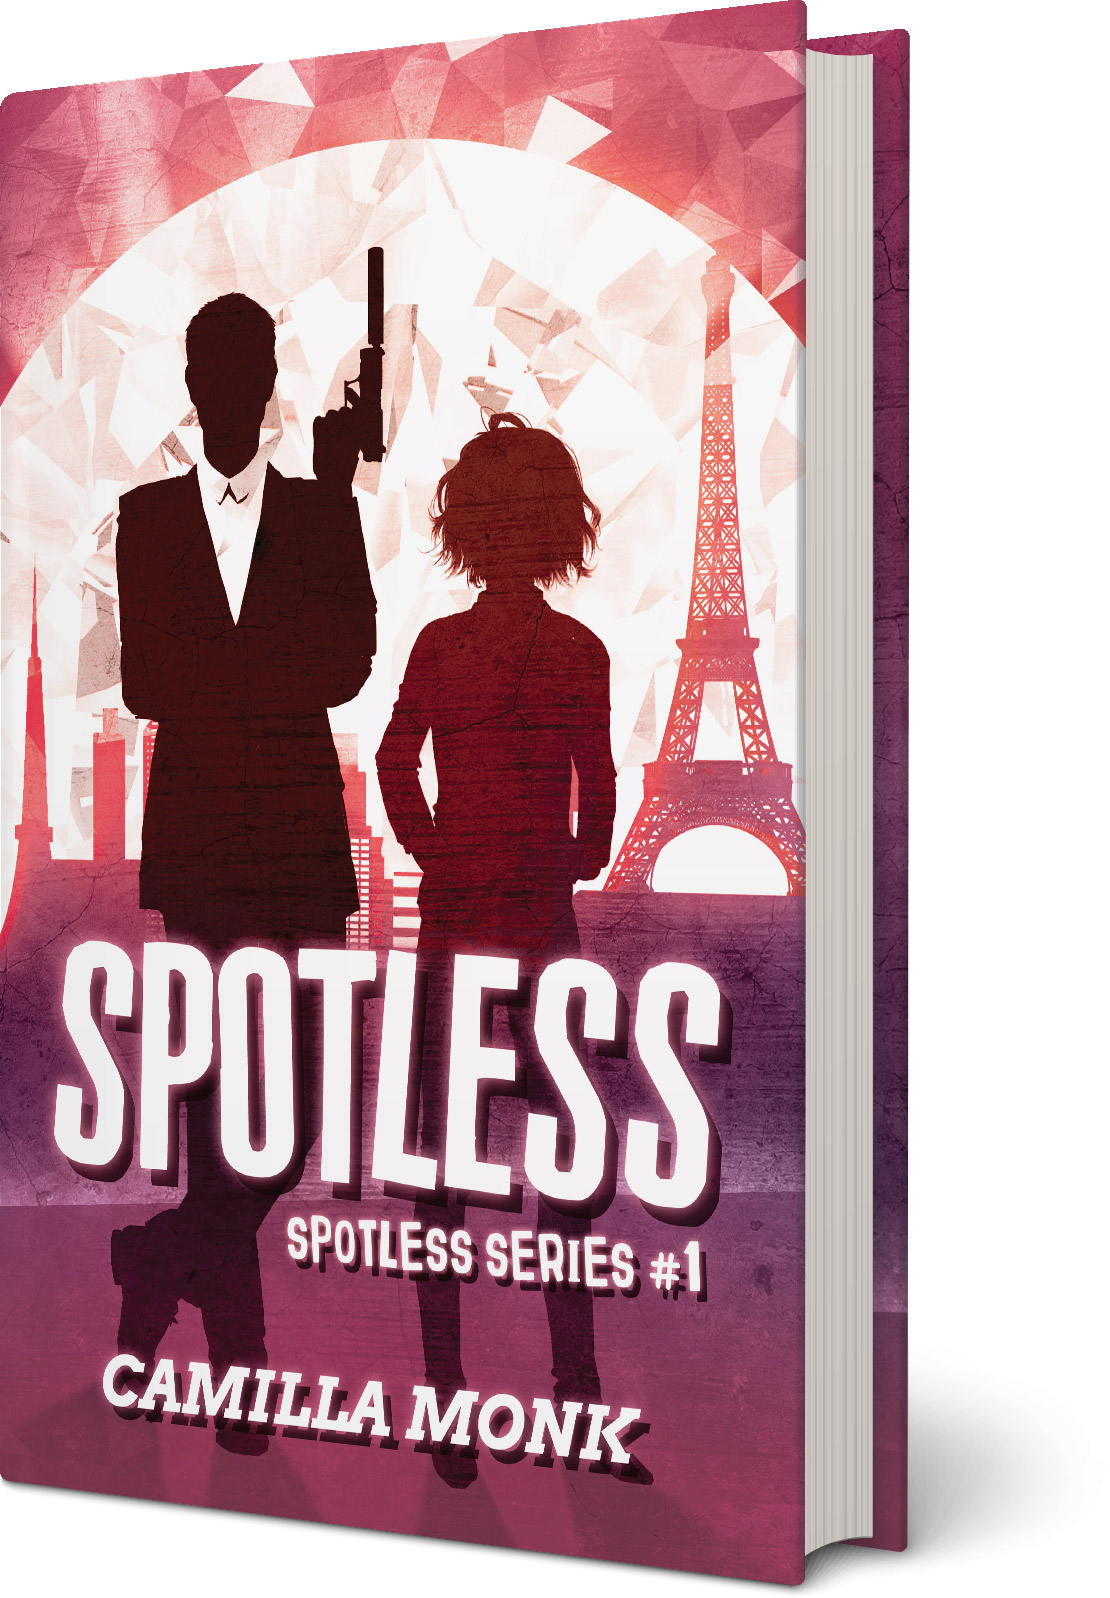 Spotless, a novel by Camilla Monk